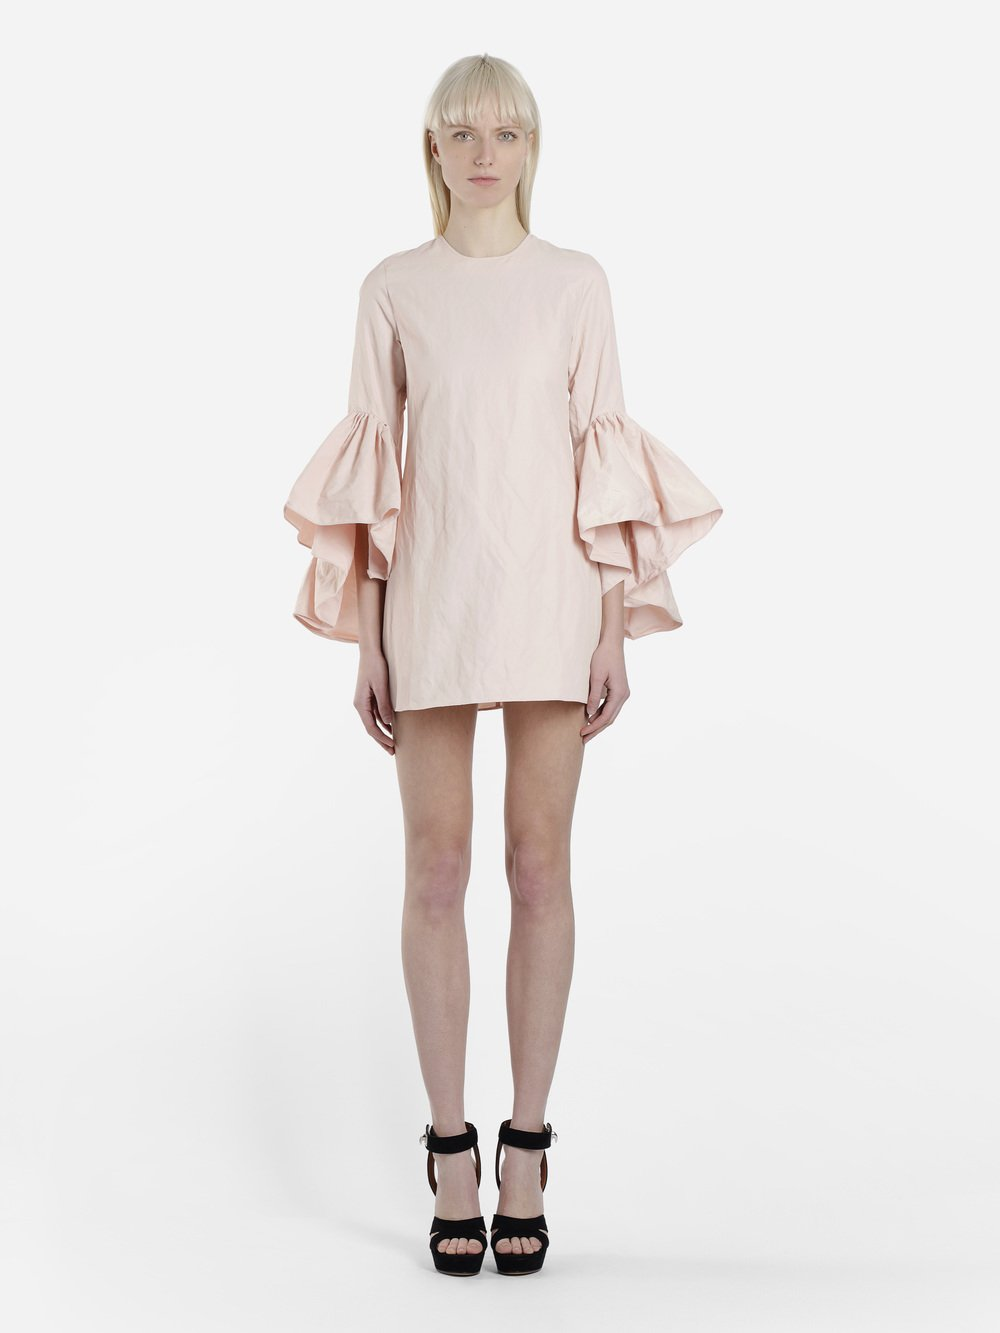 Ss18dr0042tft pale pink 18 01 17 5520